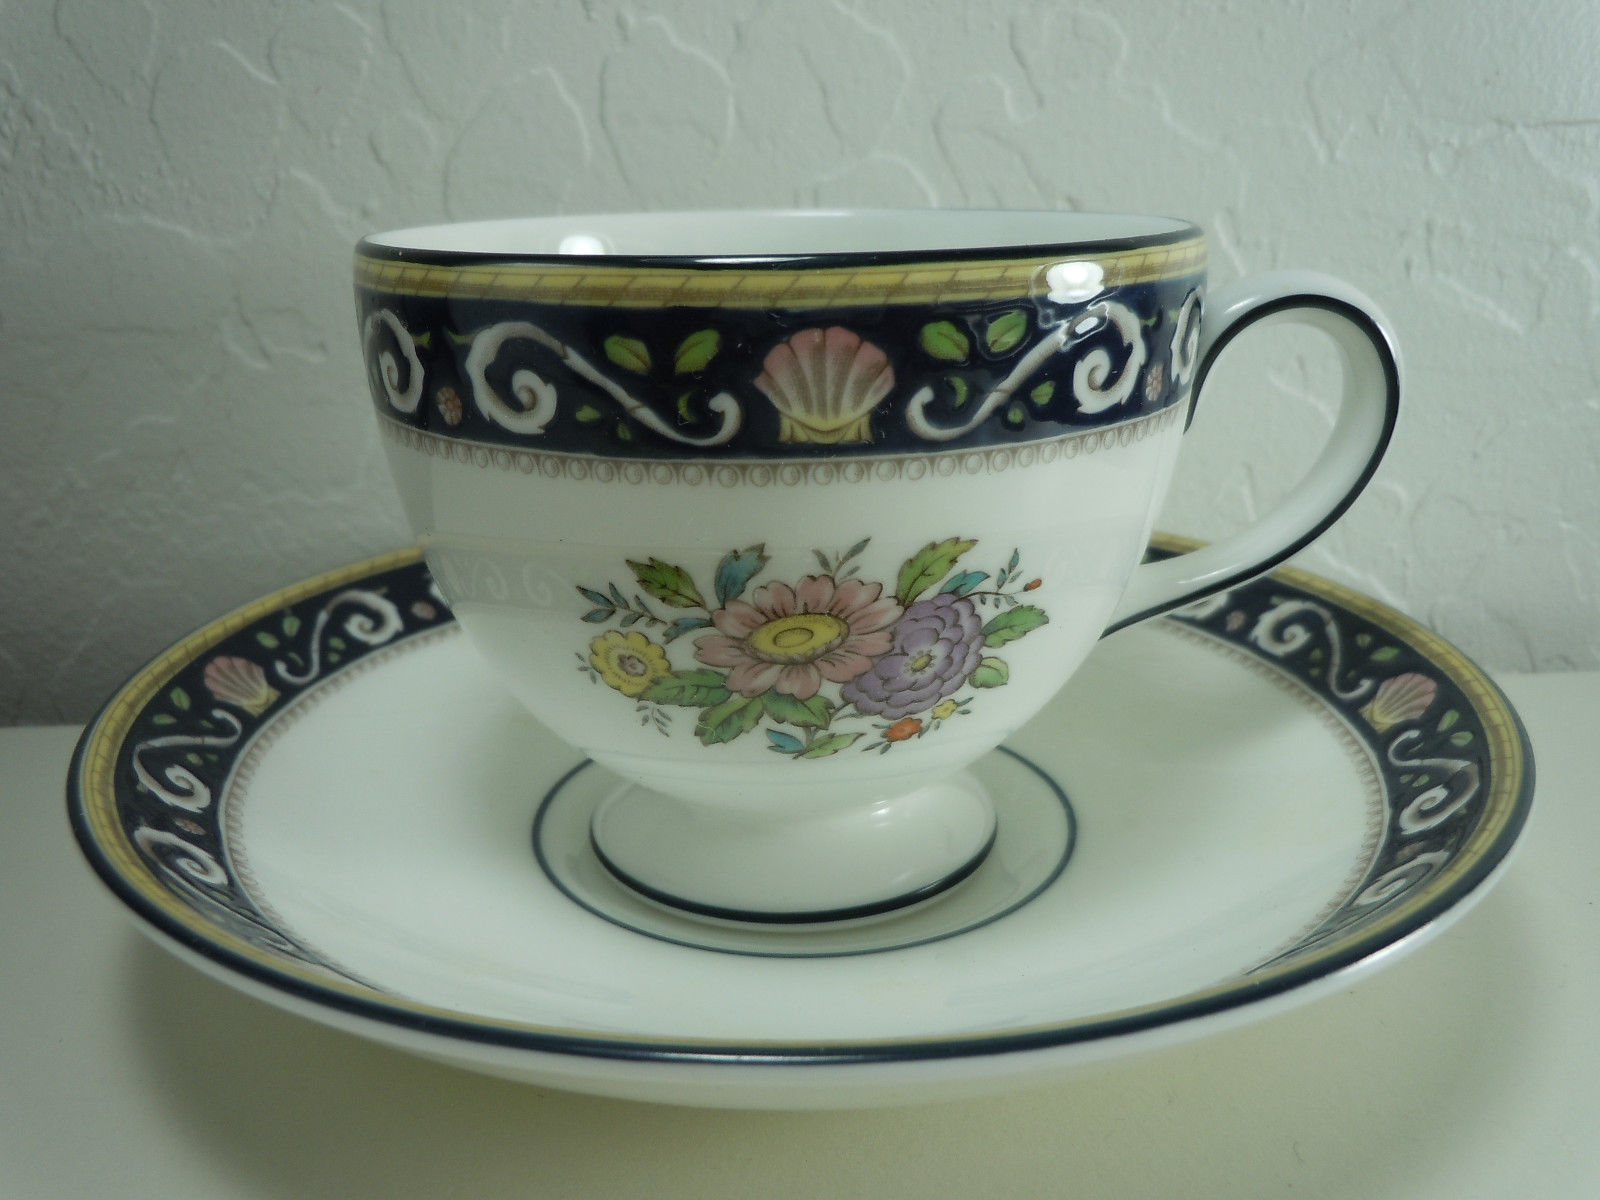 Wedgwood Runnymede Blue Cup and Saucer